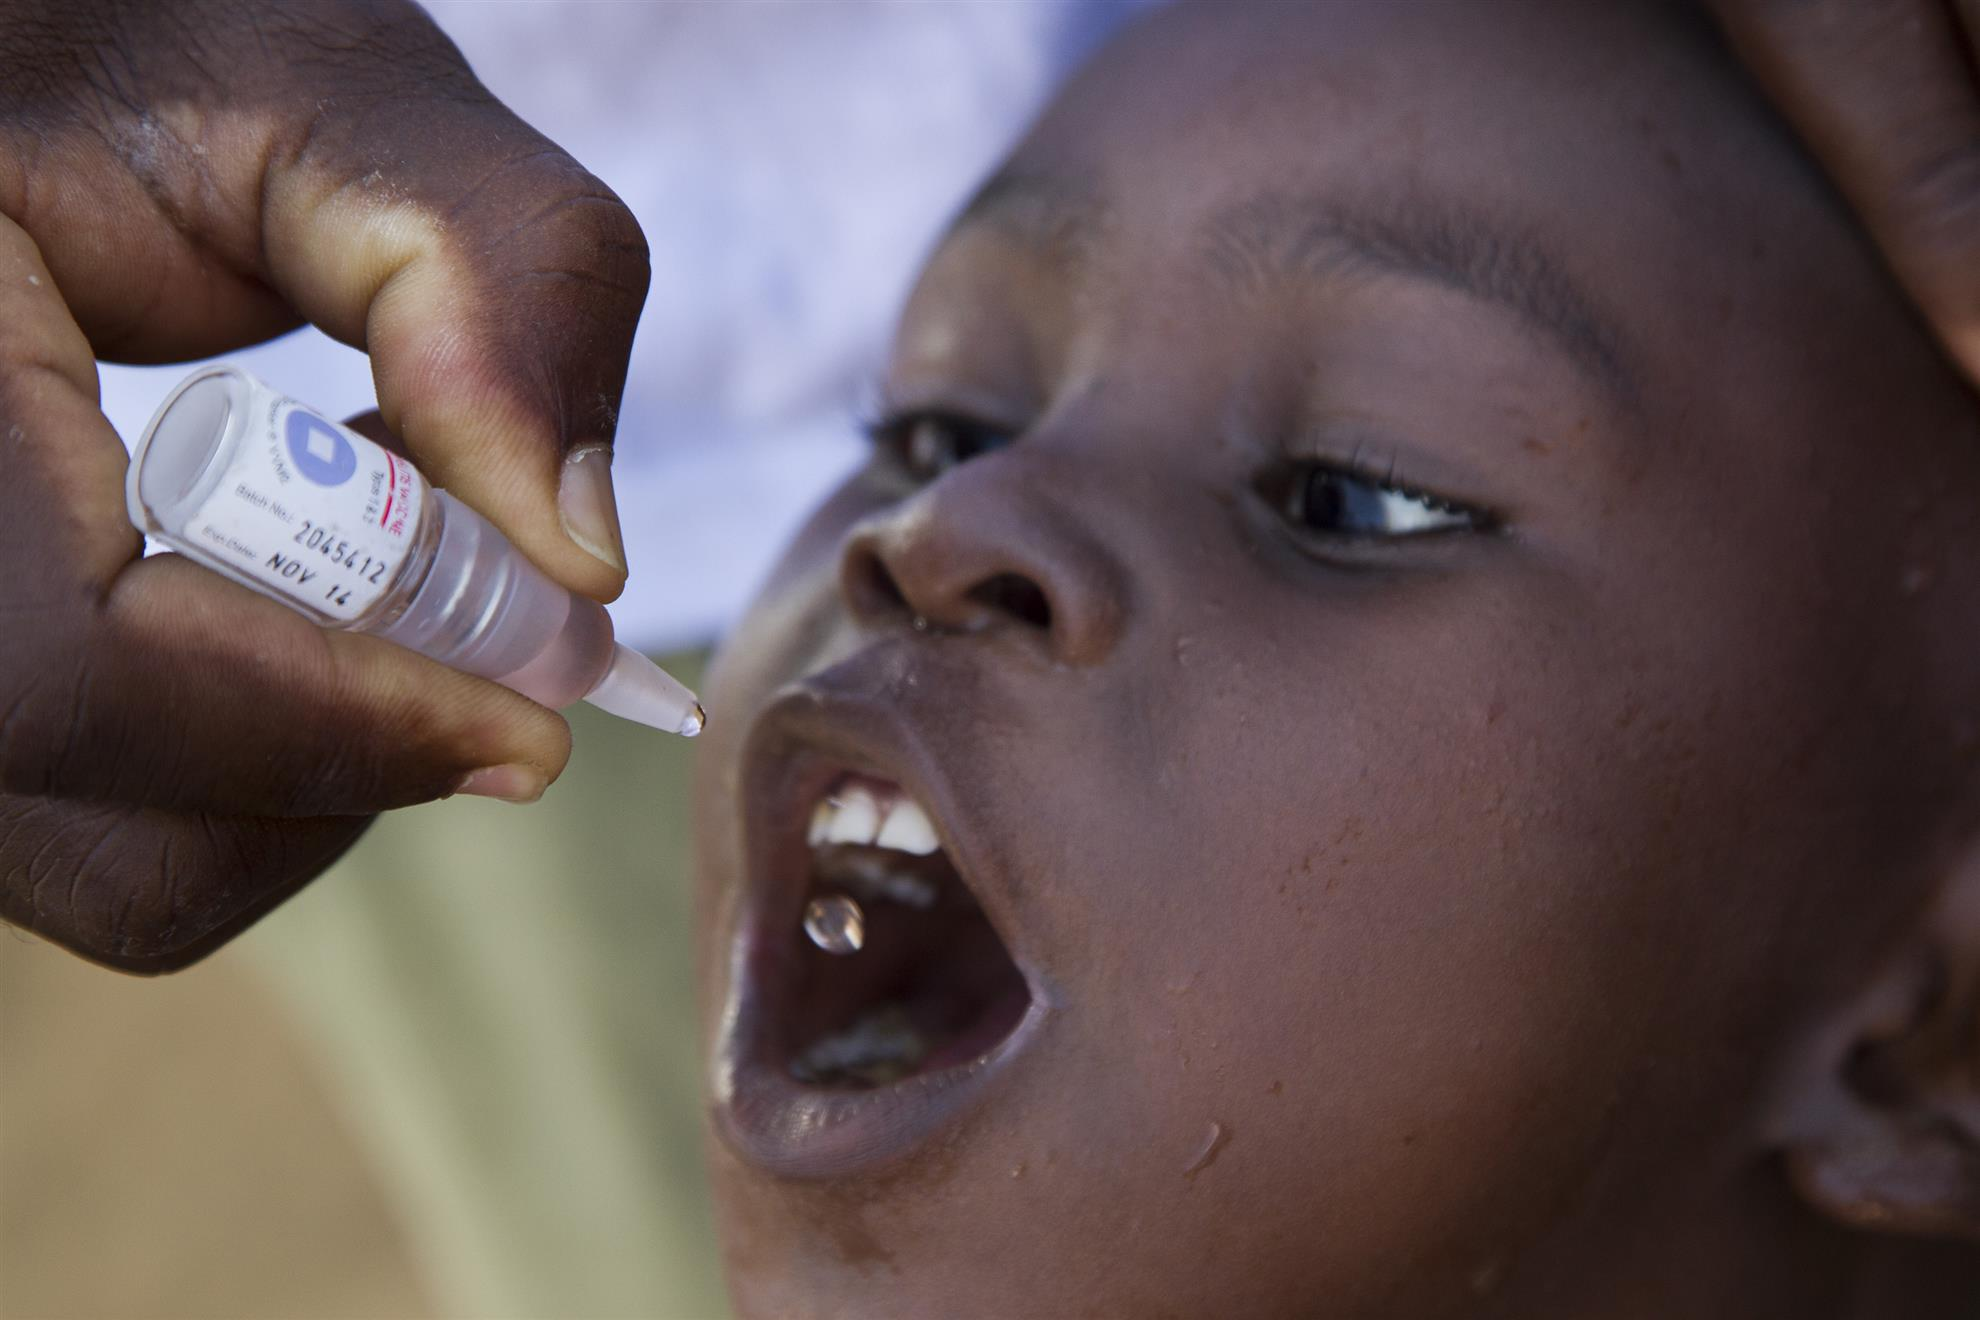 There is no cure, but polio is preventable with a vaccine.